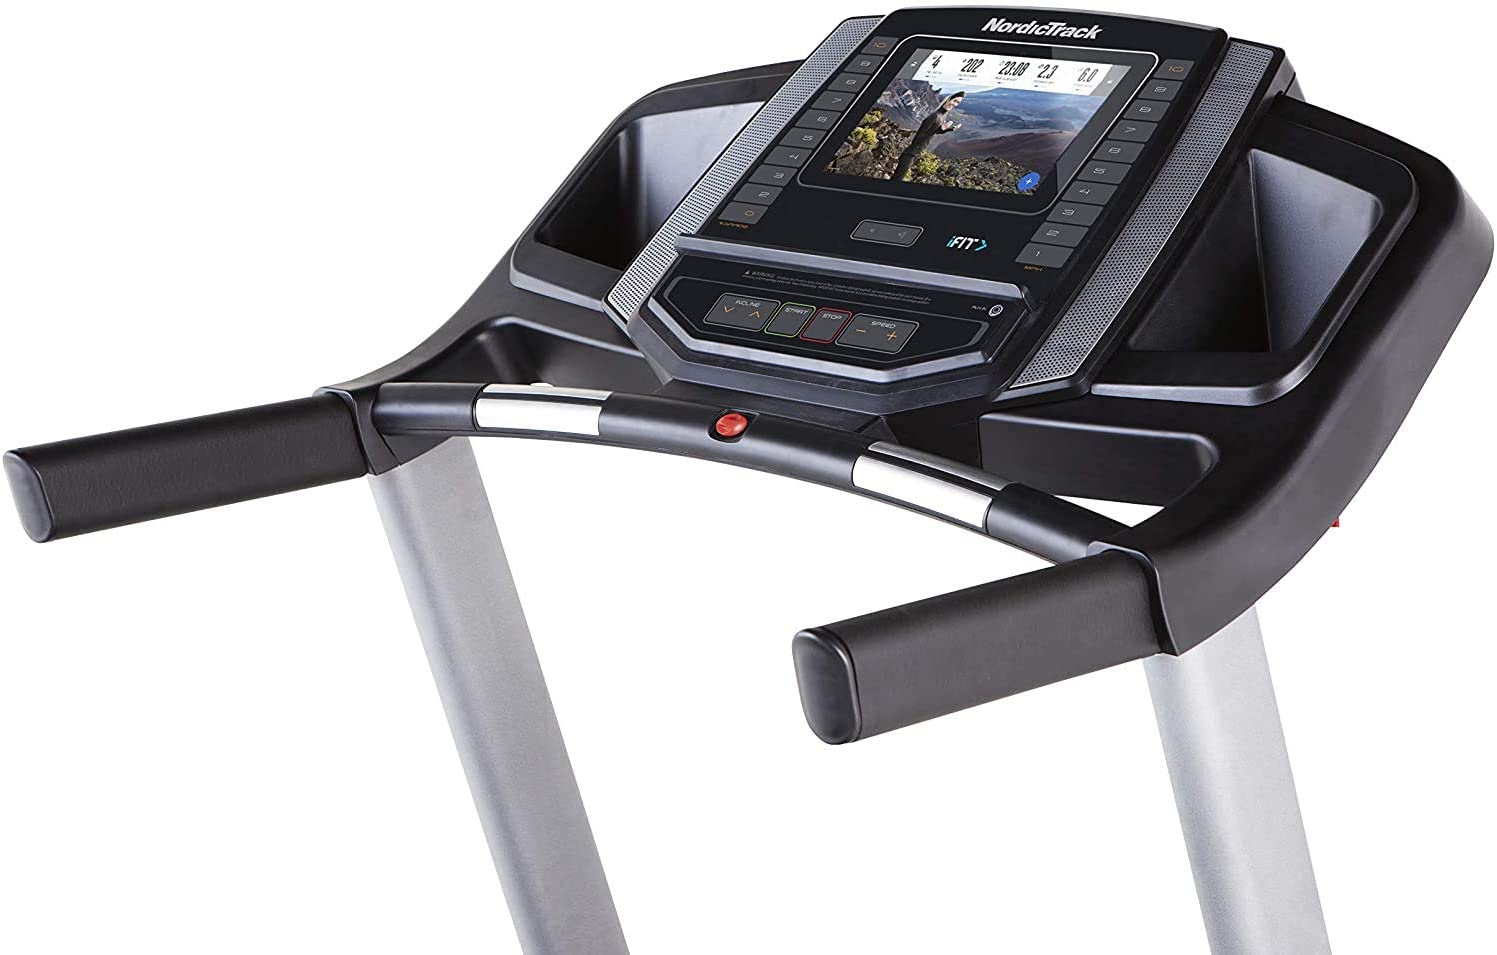 Foldable and compact stowable Treadmill Video Events /& Multiplayer APP via LCD Monitor German Quality Brand Smartphone compatible 4PS 16km//h